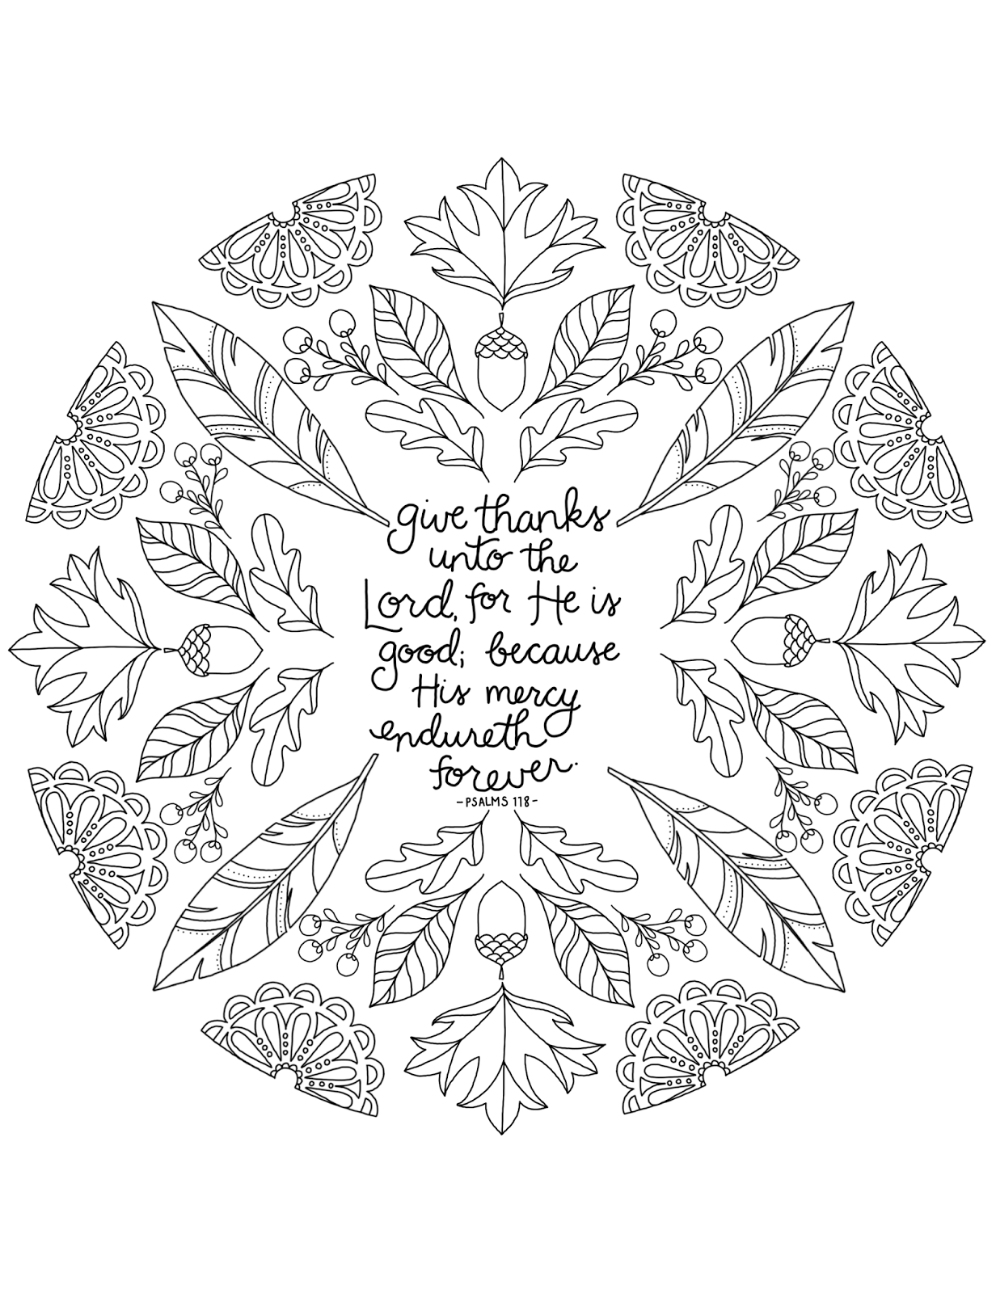 Just What I Squeeze In Give Thanks Unto The Lord Free Thanksgiving Color Thanksgiving Coloring Pages Free Thanksgiving Coloring Pages Bible Coloring Pages